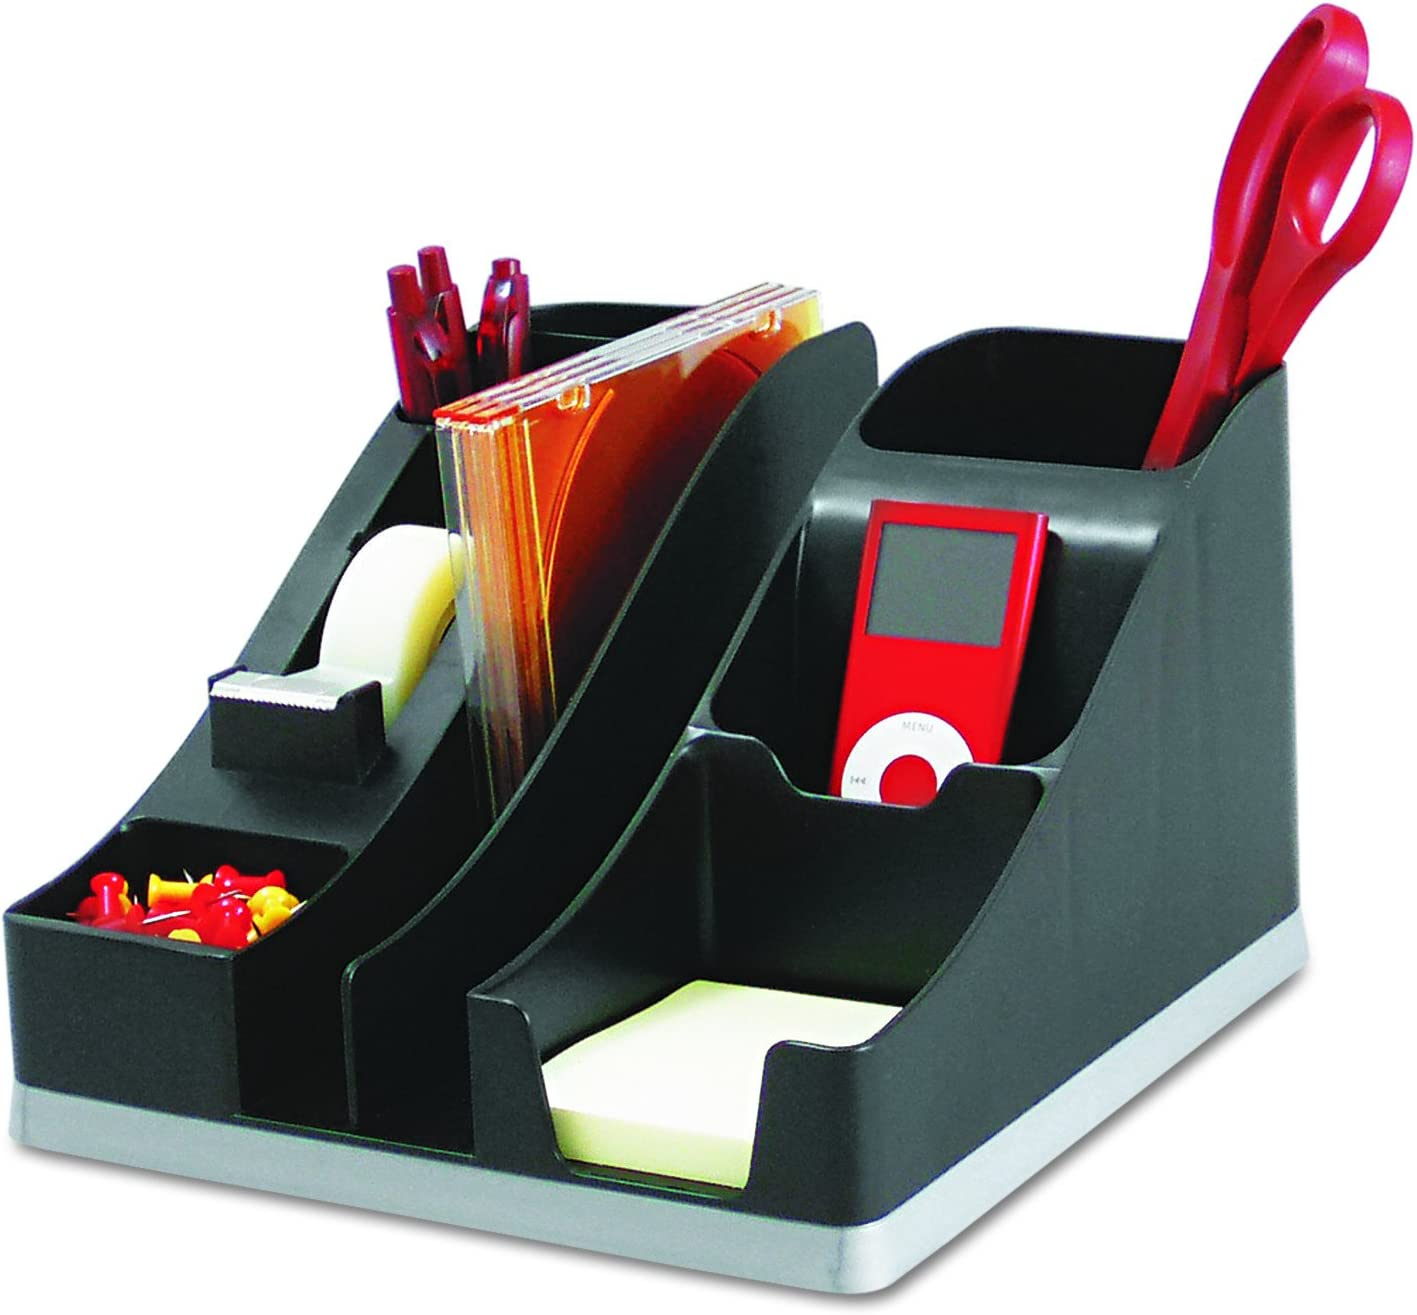 "Deflecto Silhouettes All-In-One Desk Caddy, Office Supplies Caddy, Black With Silver Base, 8-1/8""W x 5-3/16""H x 9-1/8""D (35172)"